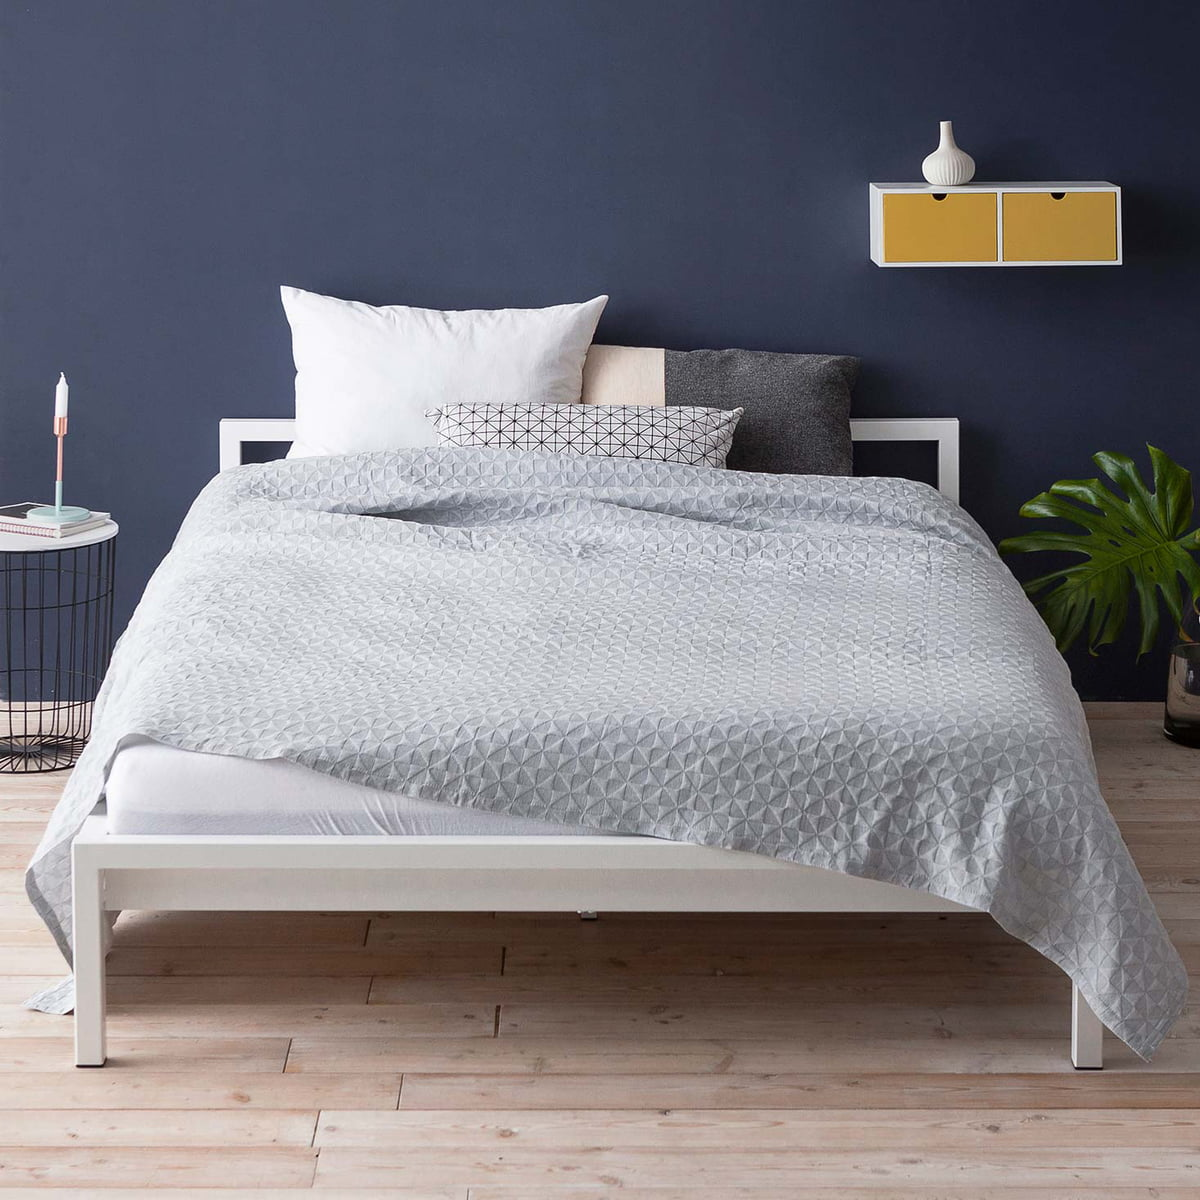 Tweepersoonsbed 140 Cm.Pure Bed By Hans Hansen In The Shop